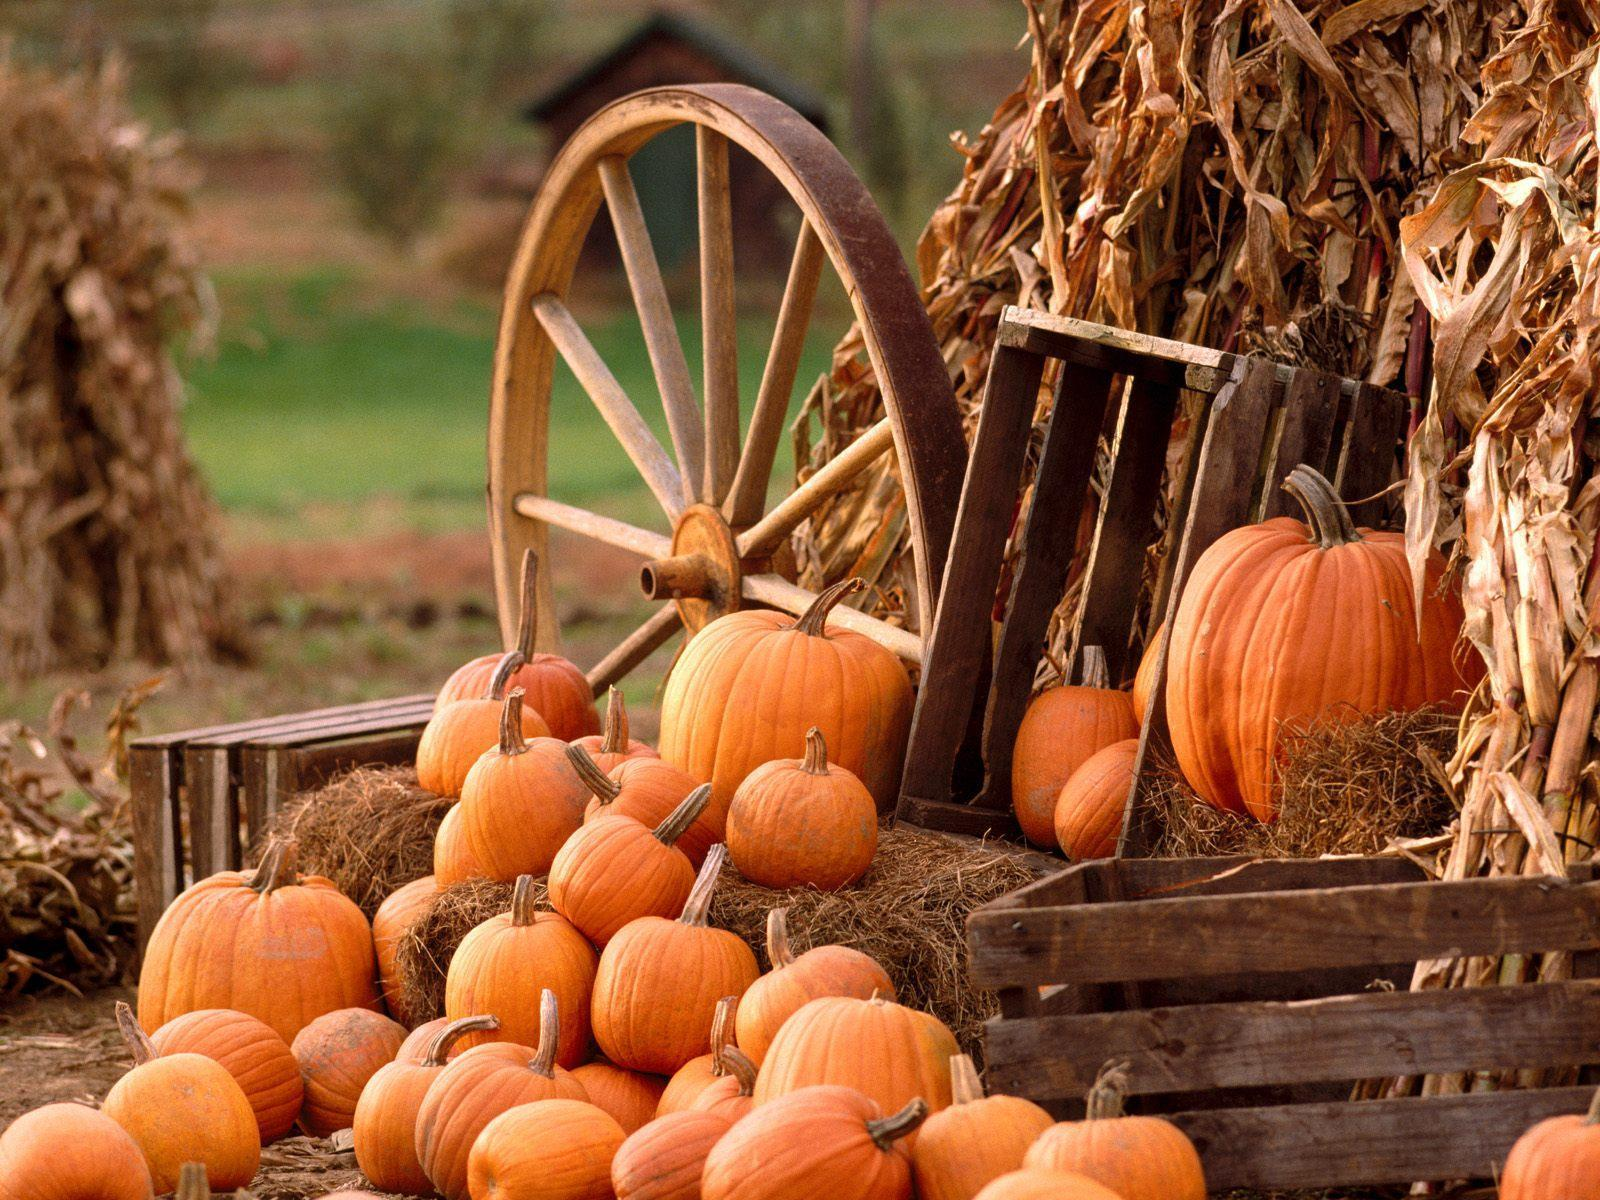 Autumn Harvest Wallpaper Free Desktop Background